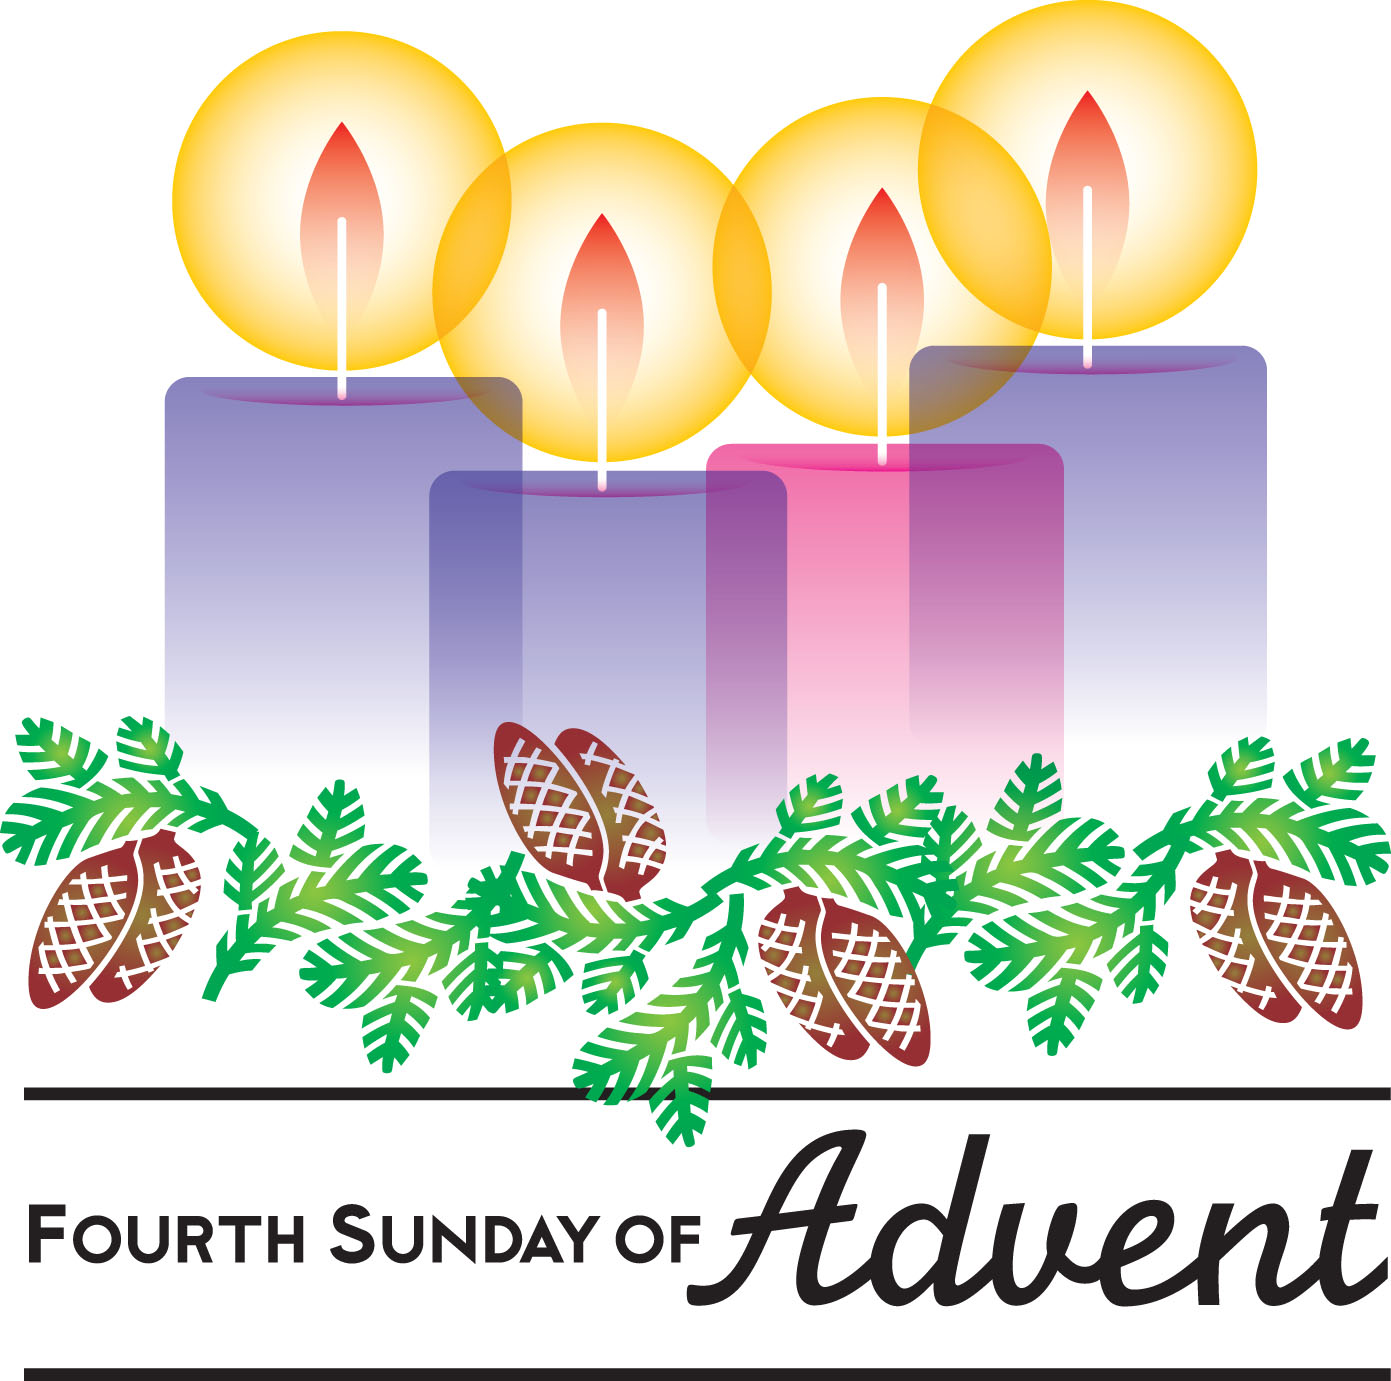 Clipart Fourth Sunday Of Advent Love.